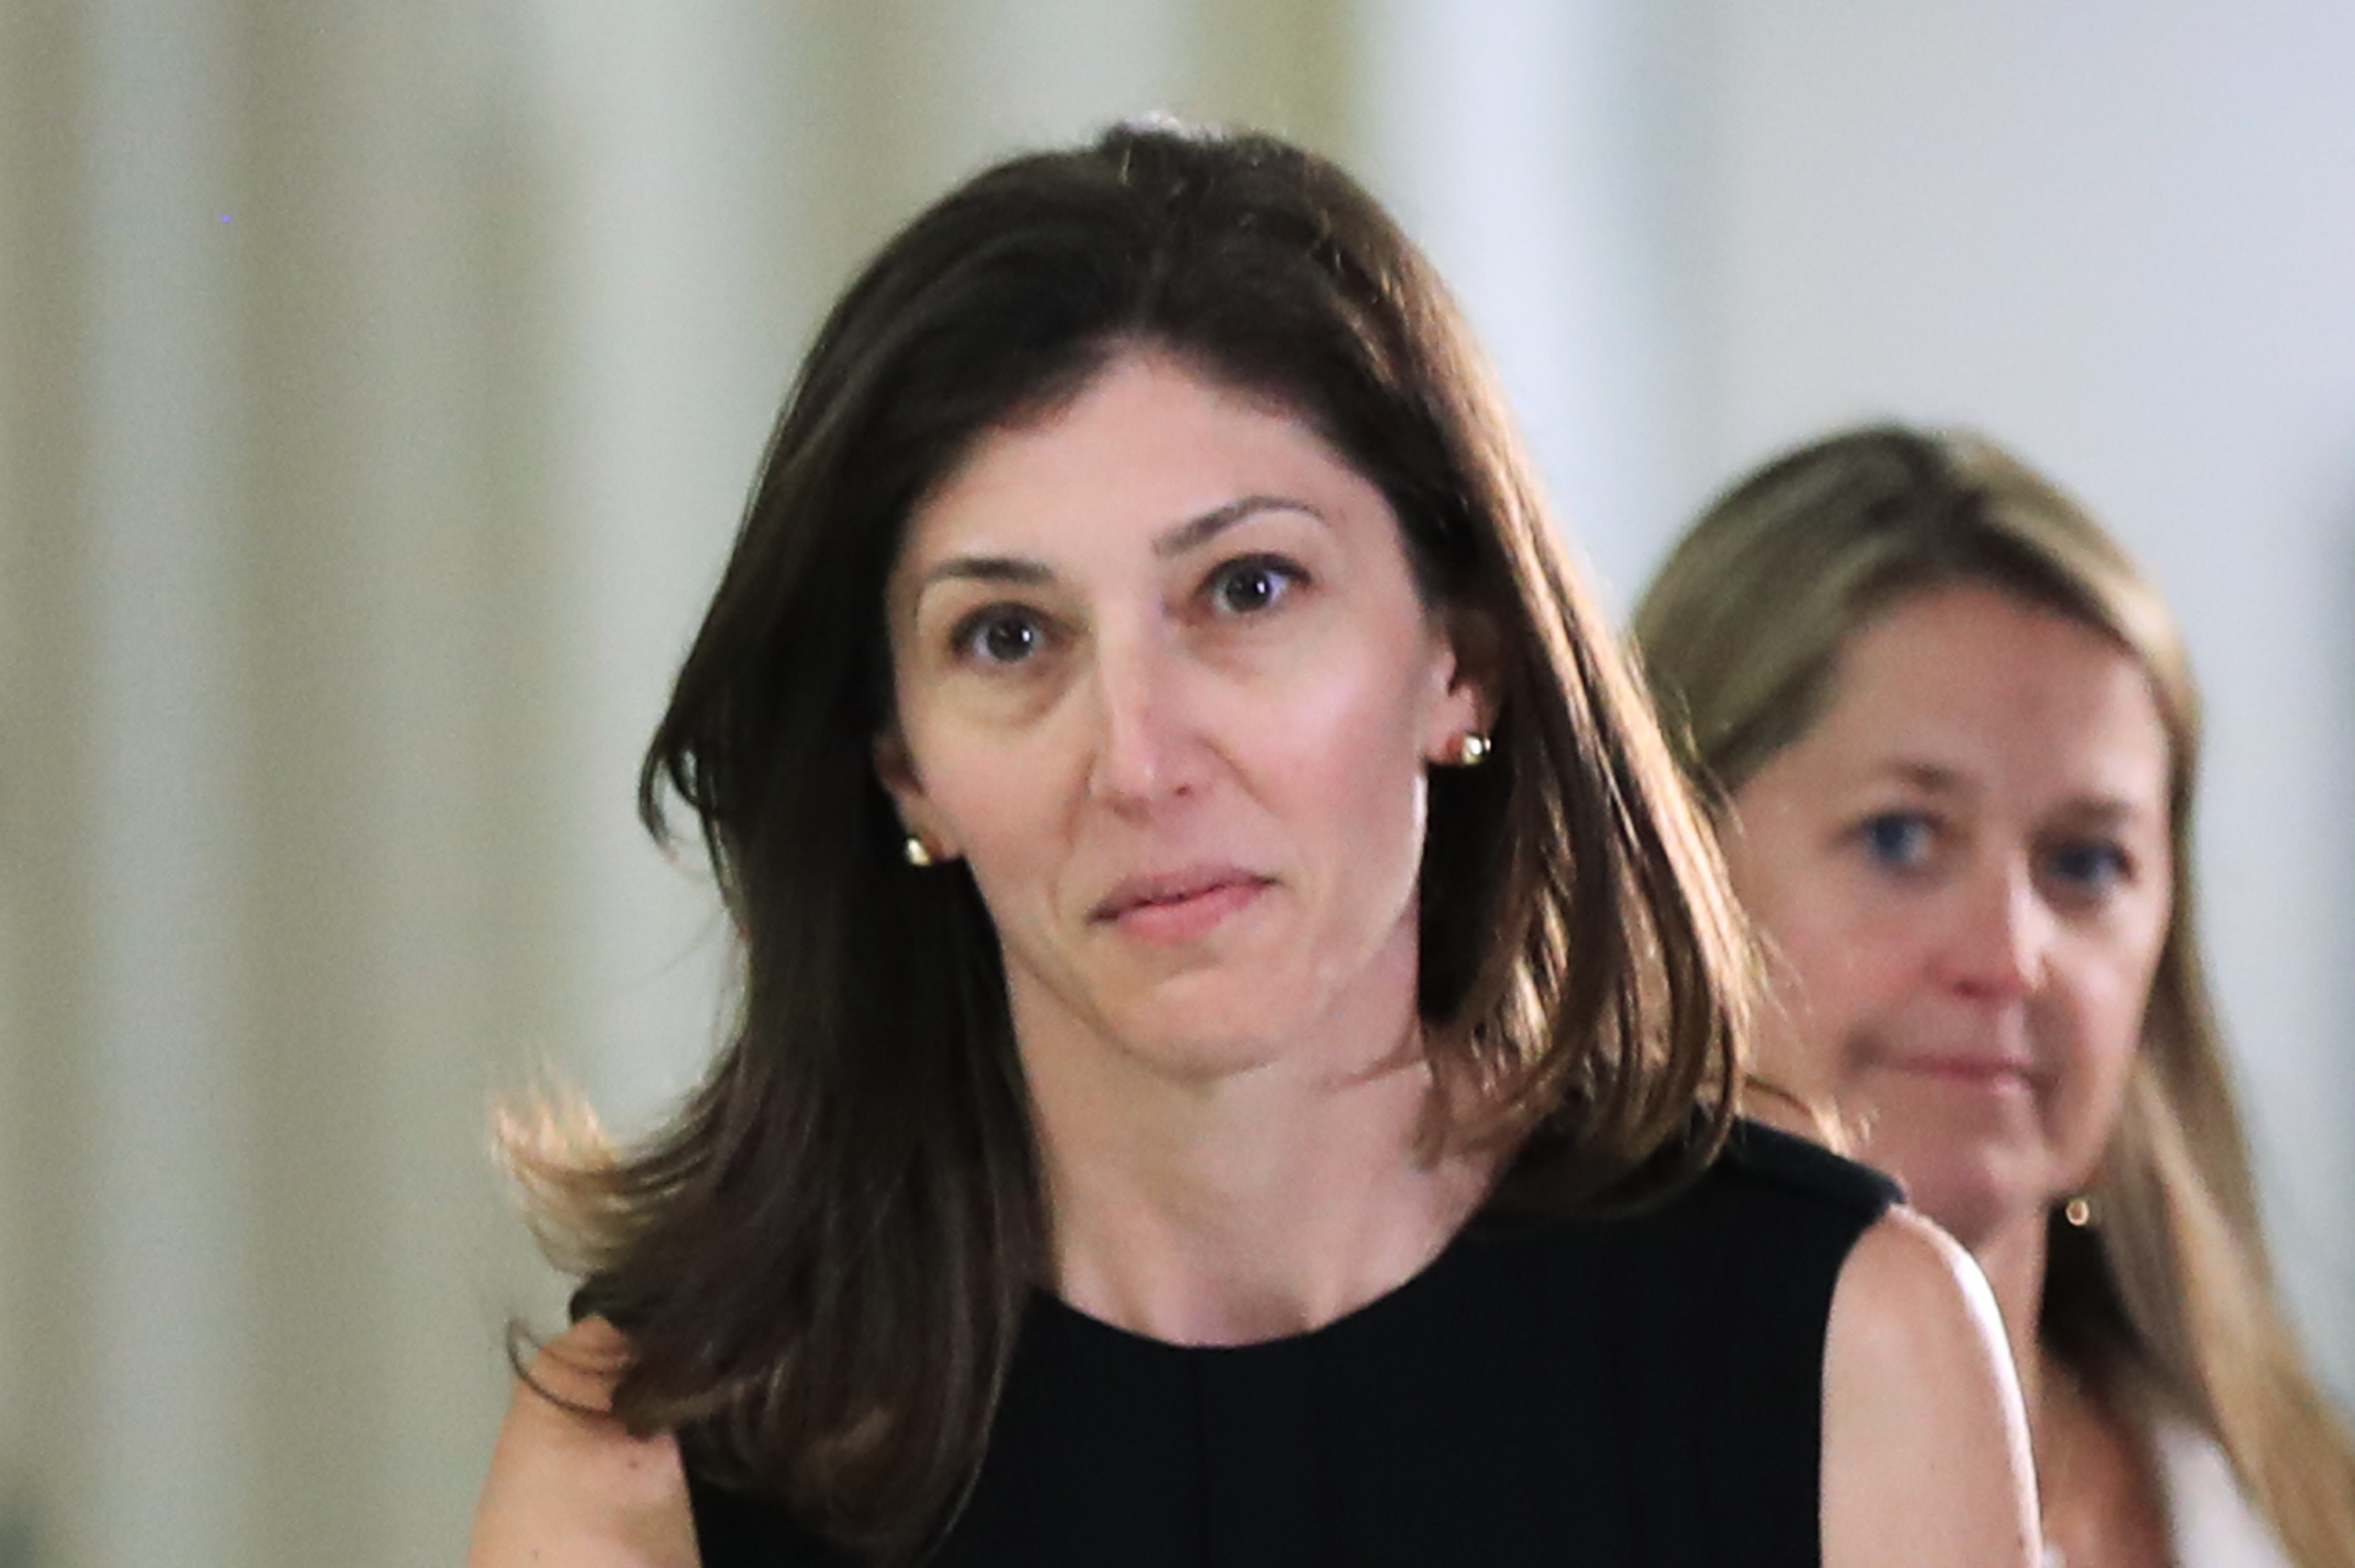 Ex-FBI lawyer Lisa Page rejects Trump's restraining order claim: 'This is a lie'